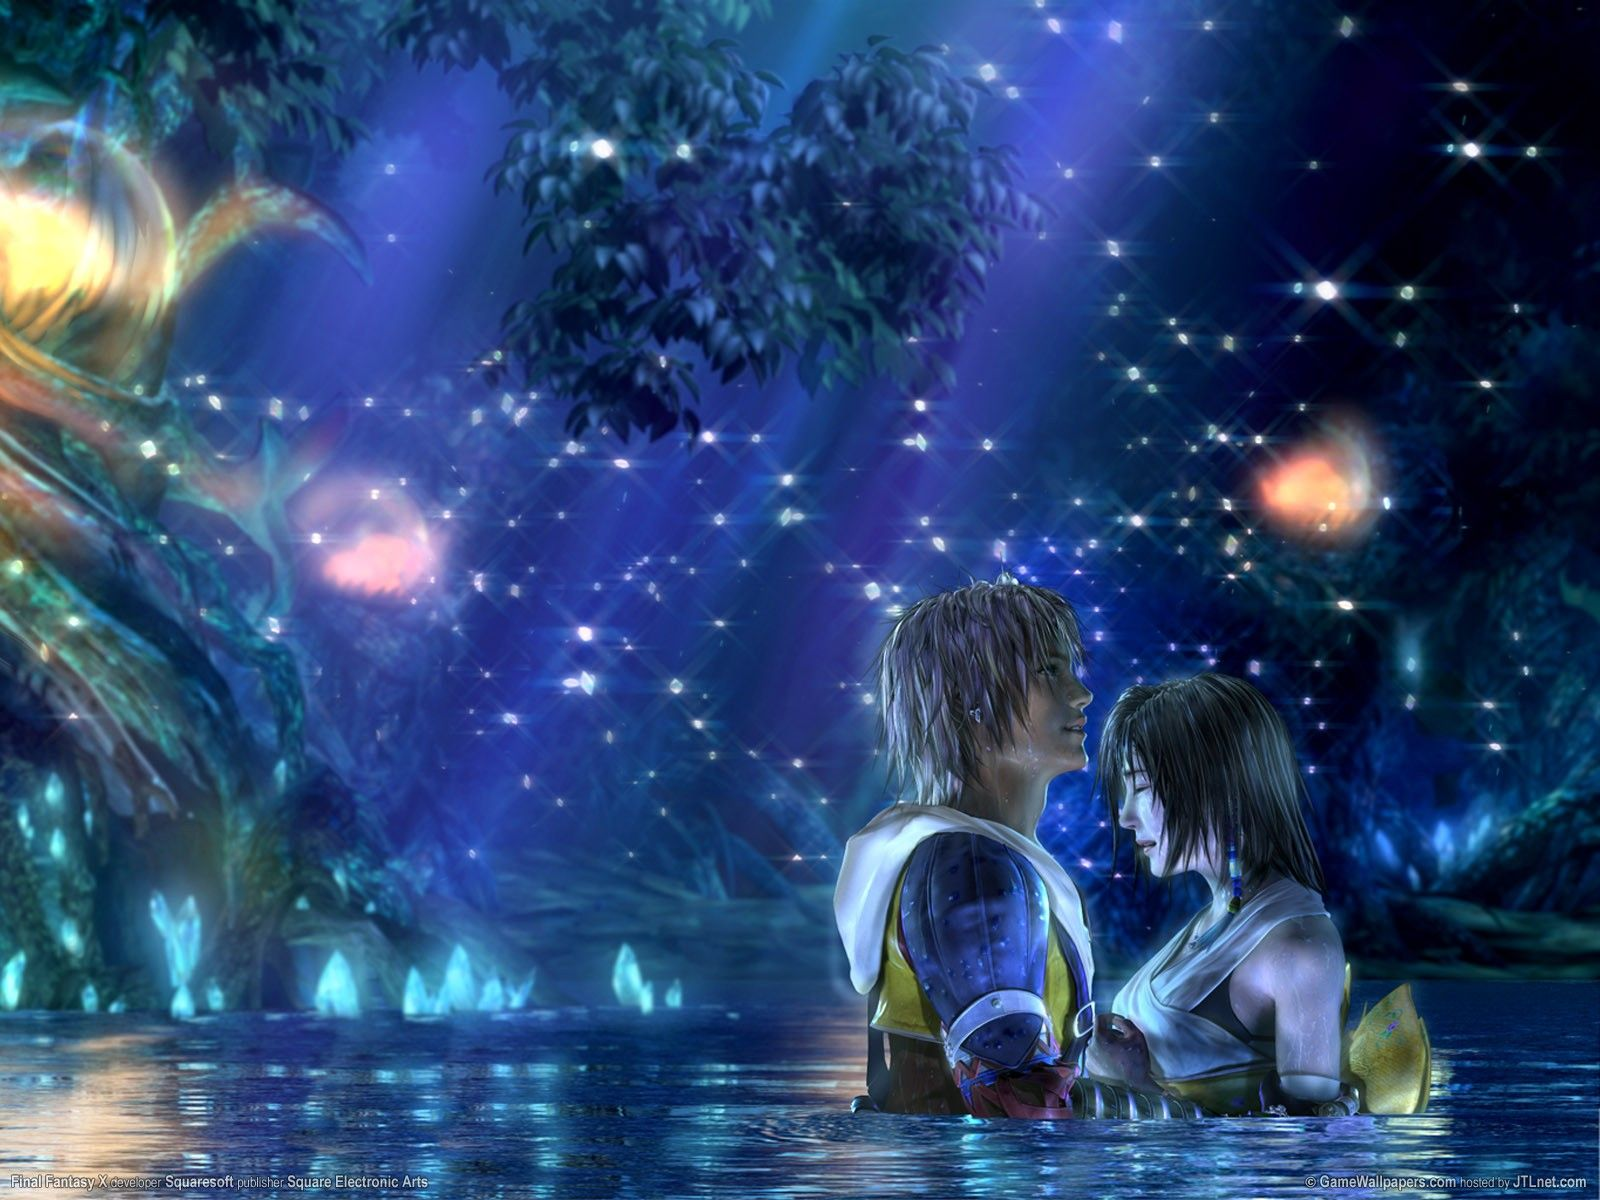 final fantasy x is one of my favorite storyline games of course i